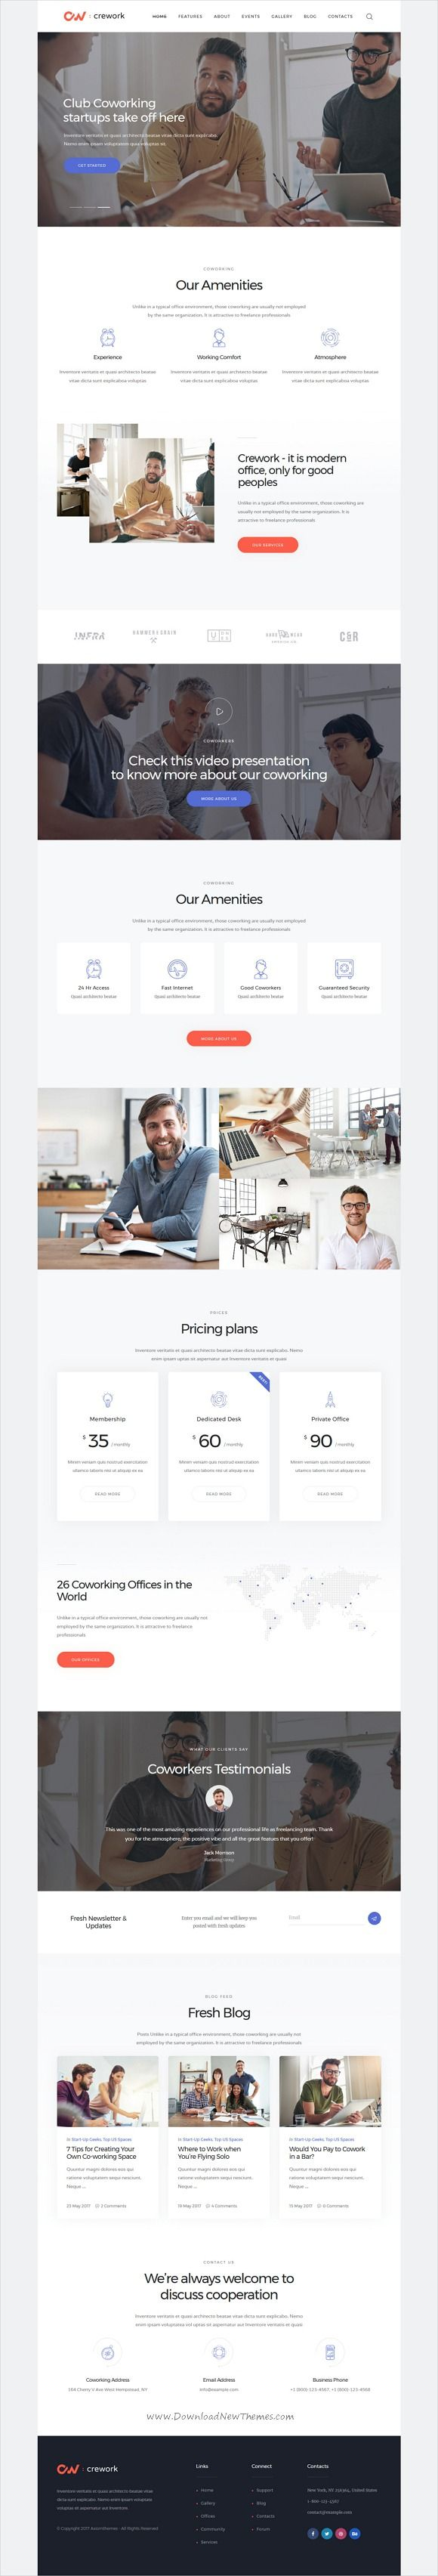 Crework is clean and modern design 3in1 responsive #WordPress theme for creative #coworking, open office, #workshop and conferences website download now..